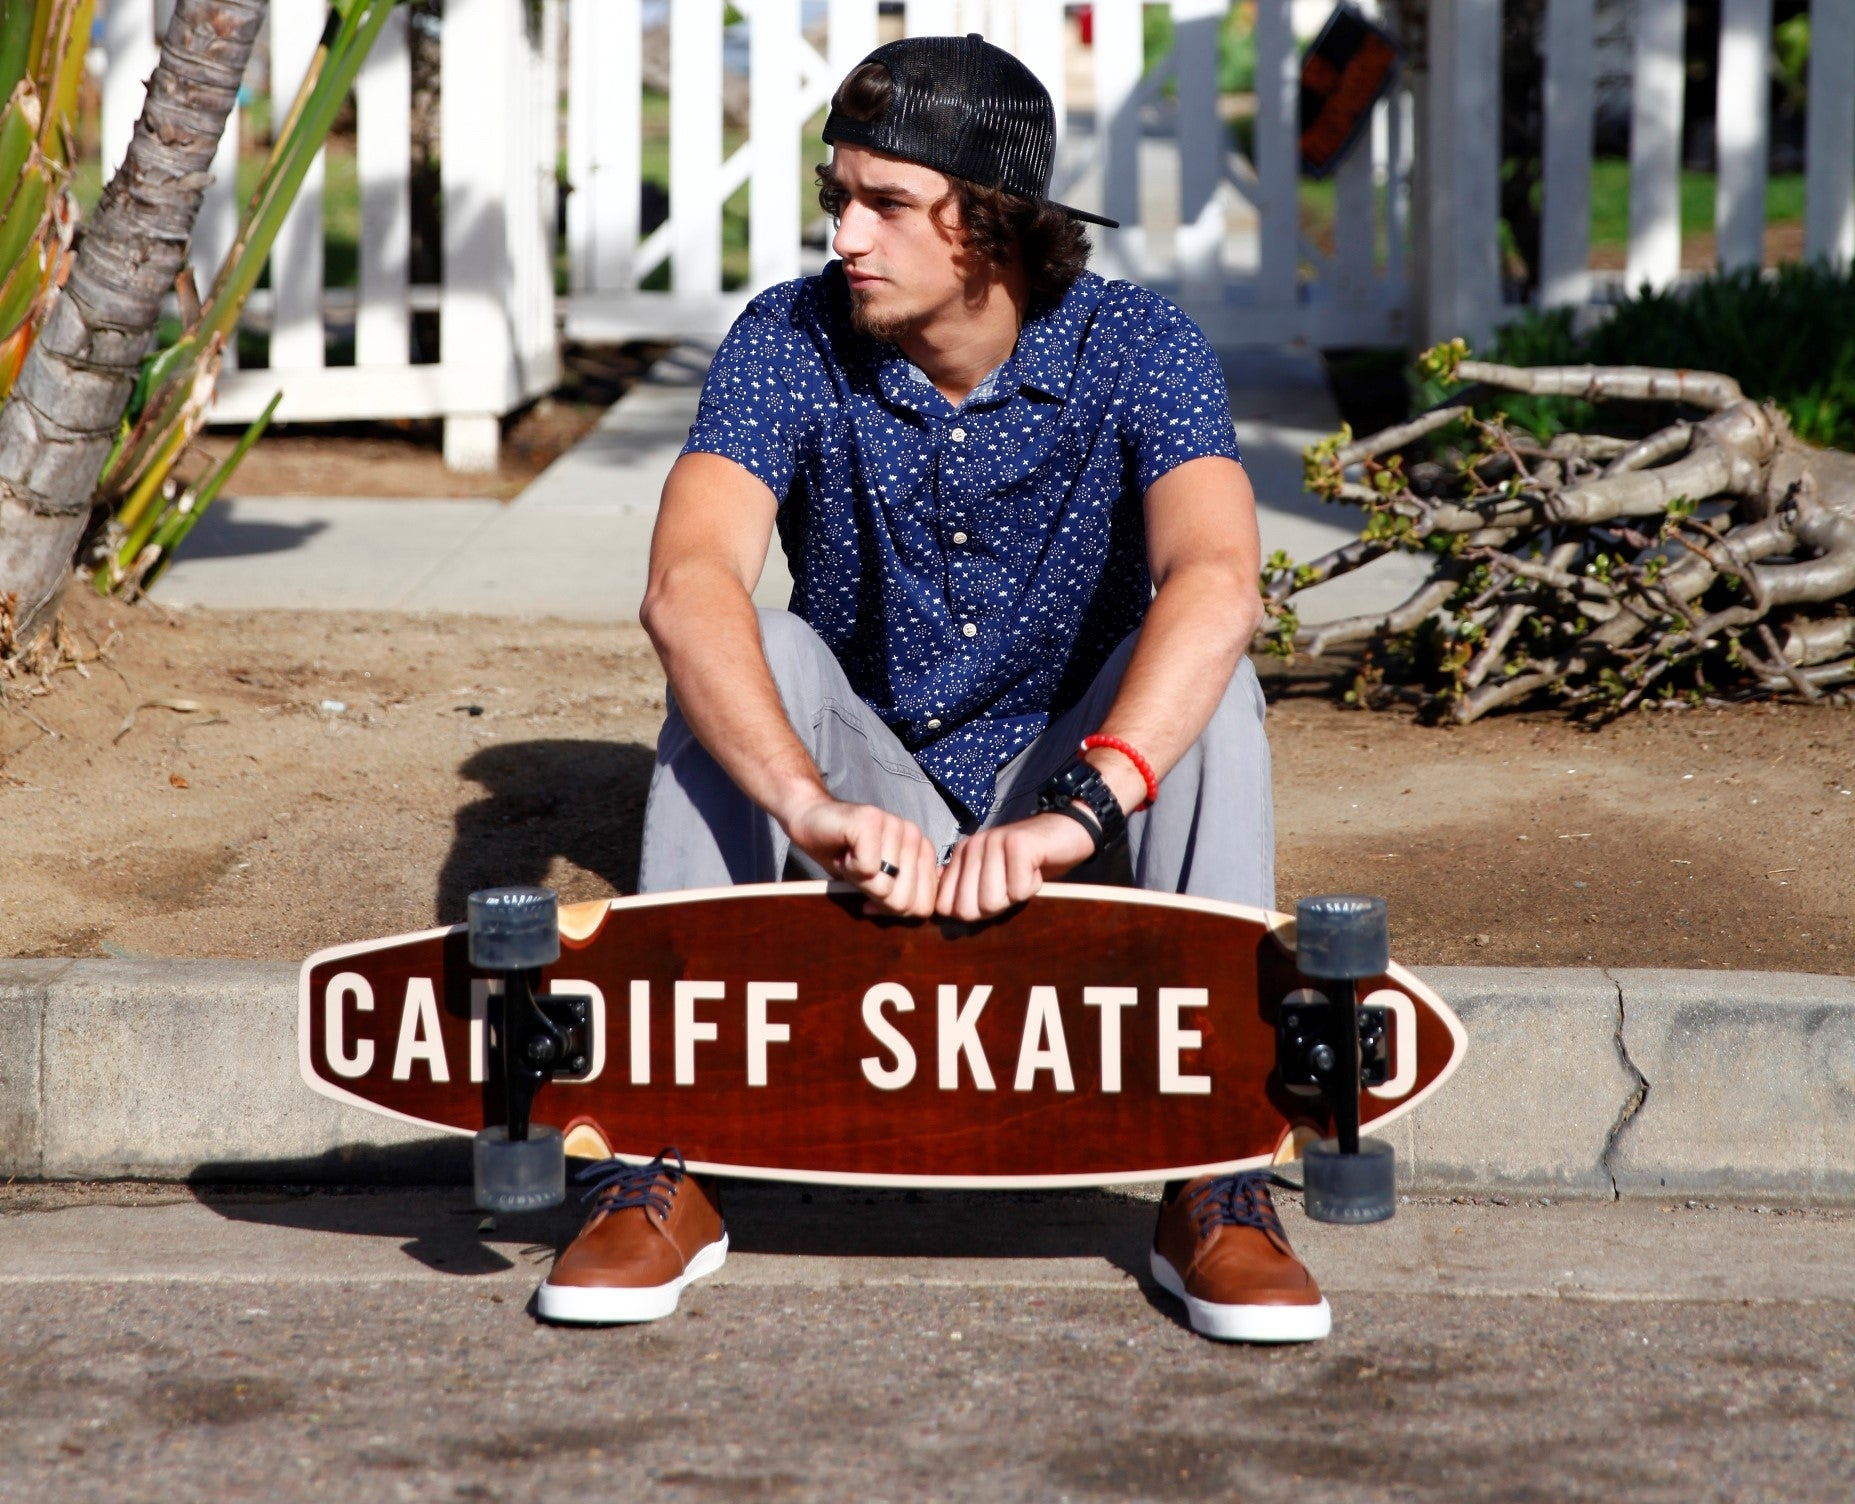 Cardiff Skate Co  - Auto Adjustable Roller Skate Shoes